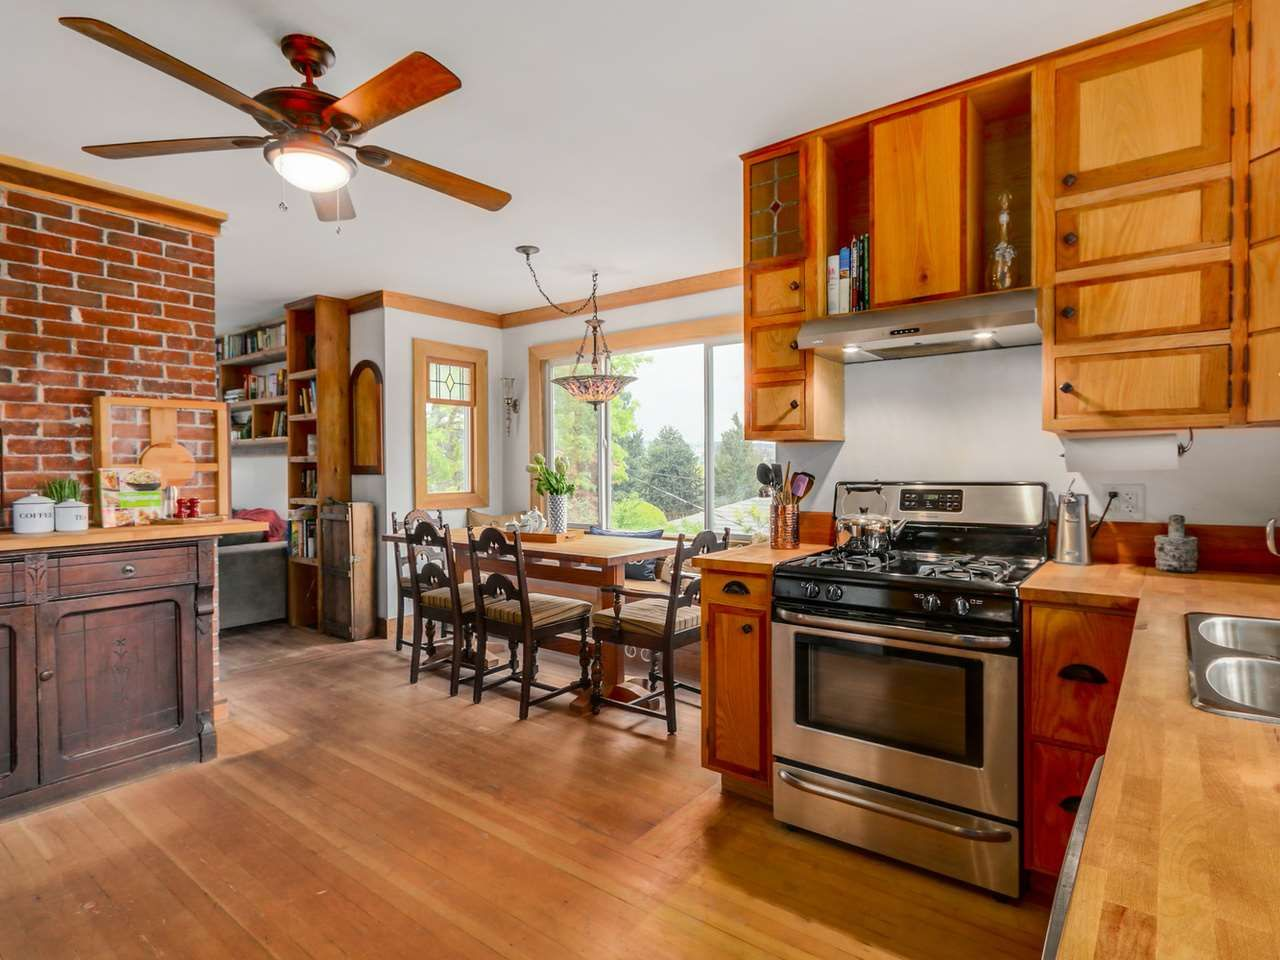 Main Photo: 330 HOULT STREET in New Westminster: The Heights NW House for sale : MLS®# R2057551